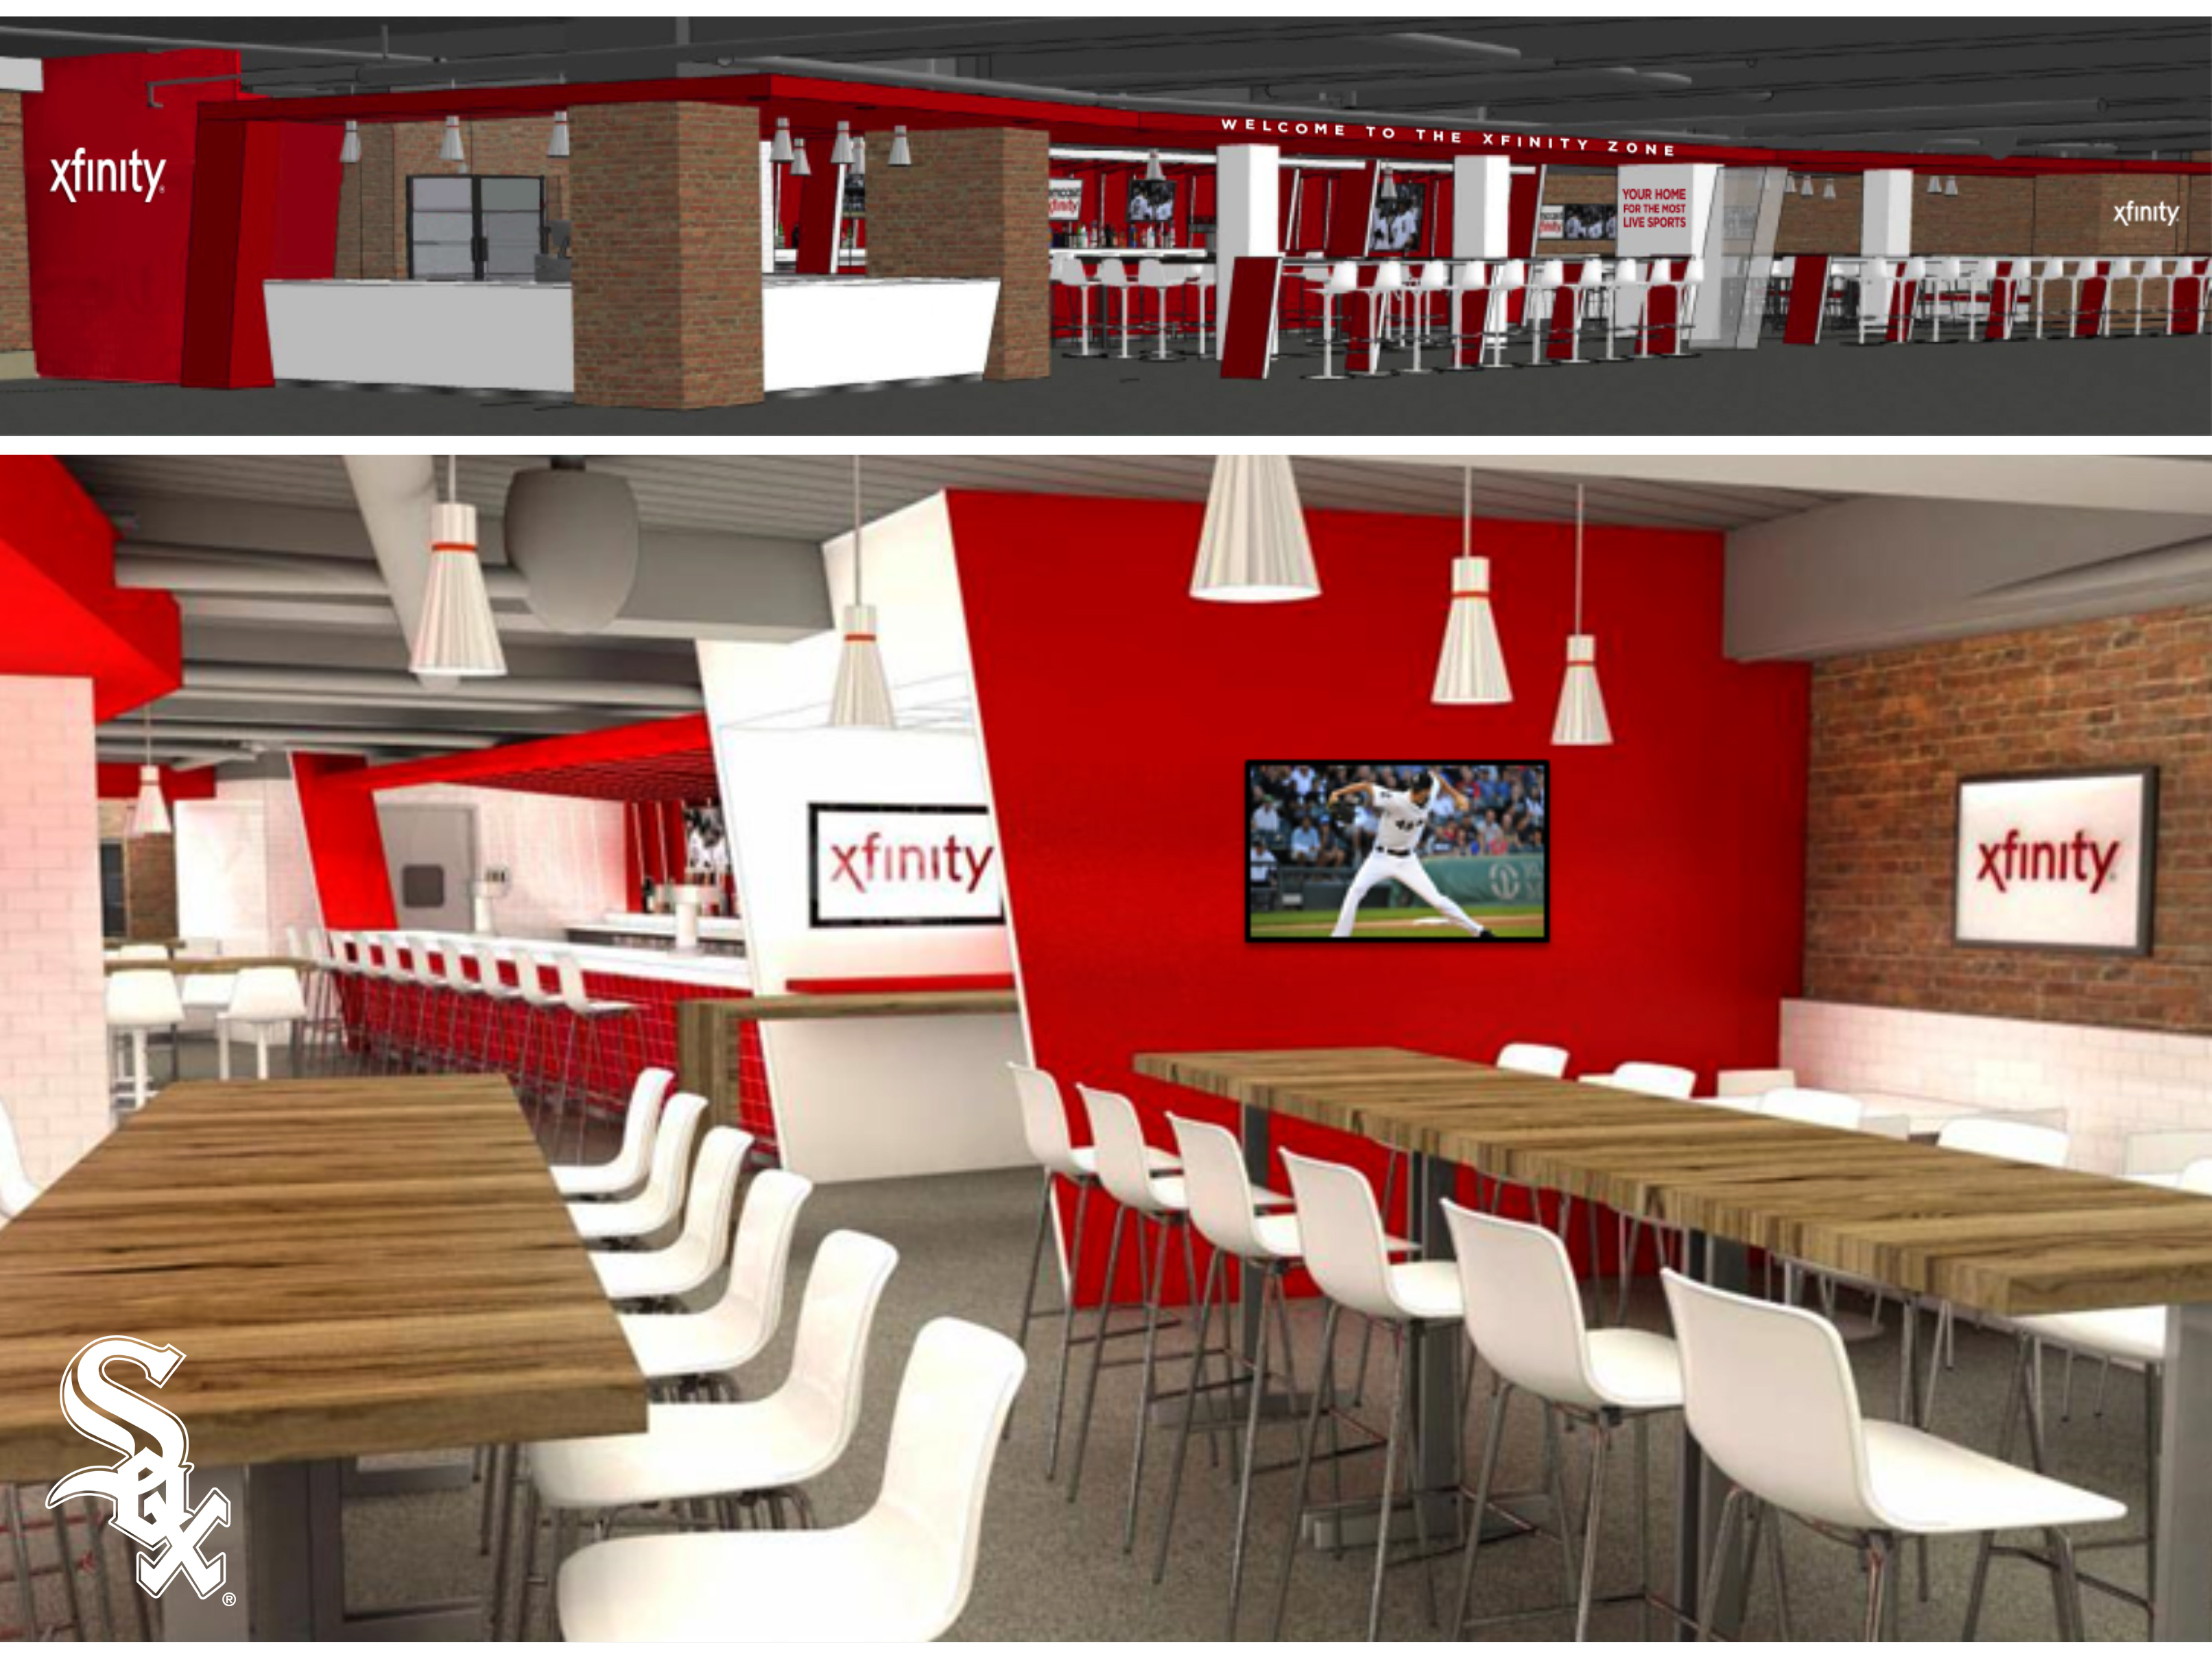 Rendering of the Xfinity Zone at U.S. Cellular Field in Chicago